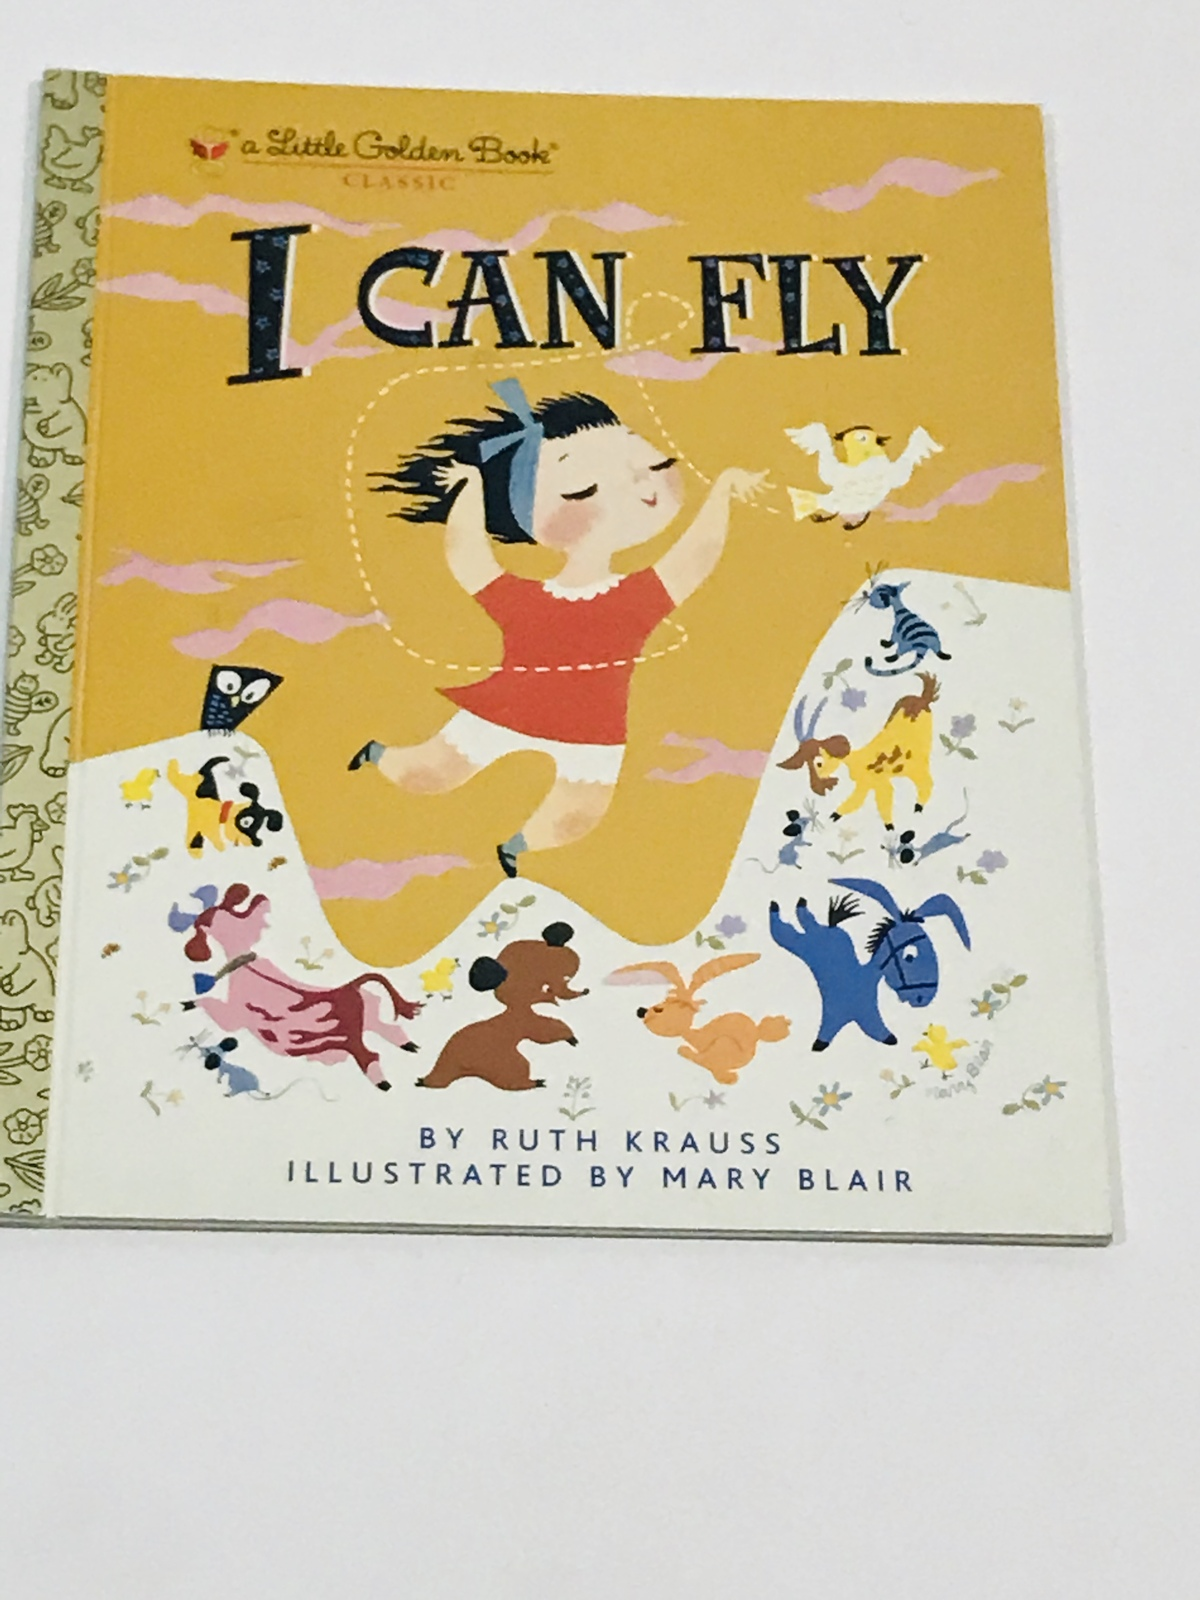 I Can Fly By Ruth Krauss - A Golden Book